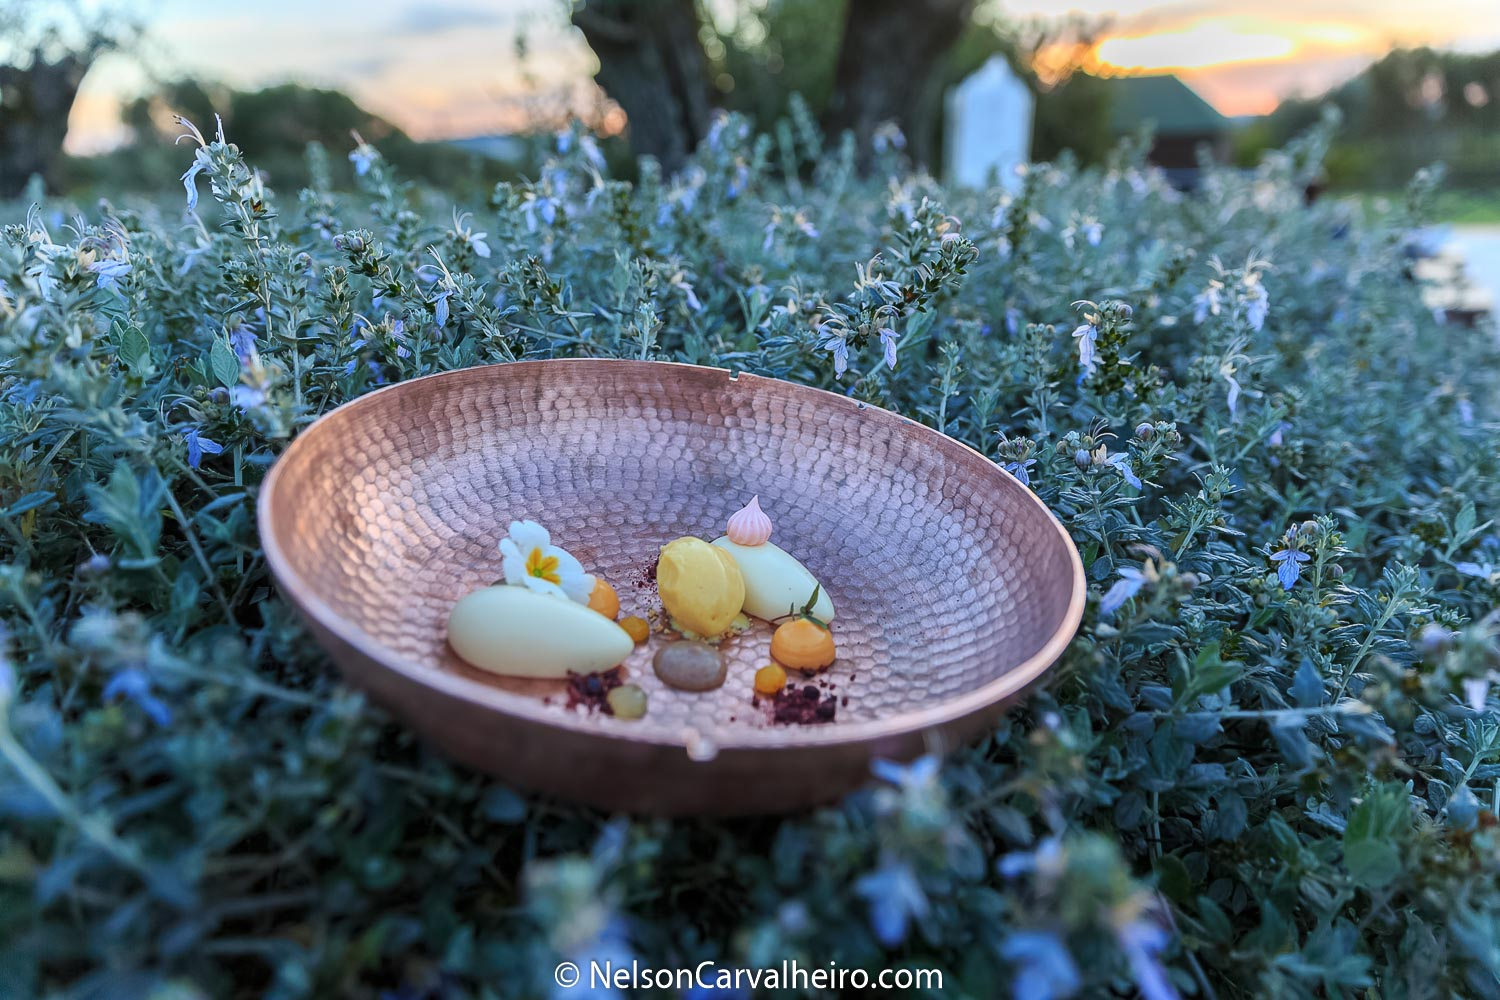 Alentejo Wine Travel Guide - Divinus Restaurant - Summer/Spring Menu Detail